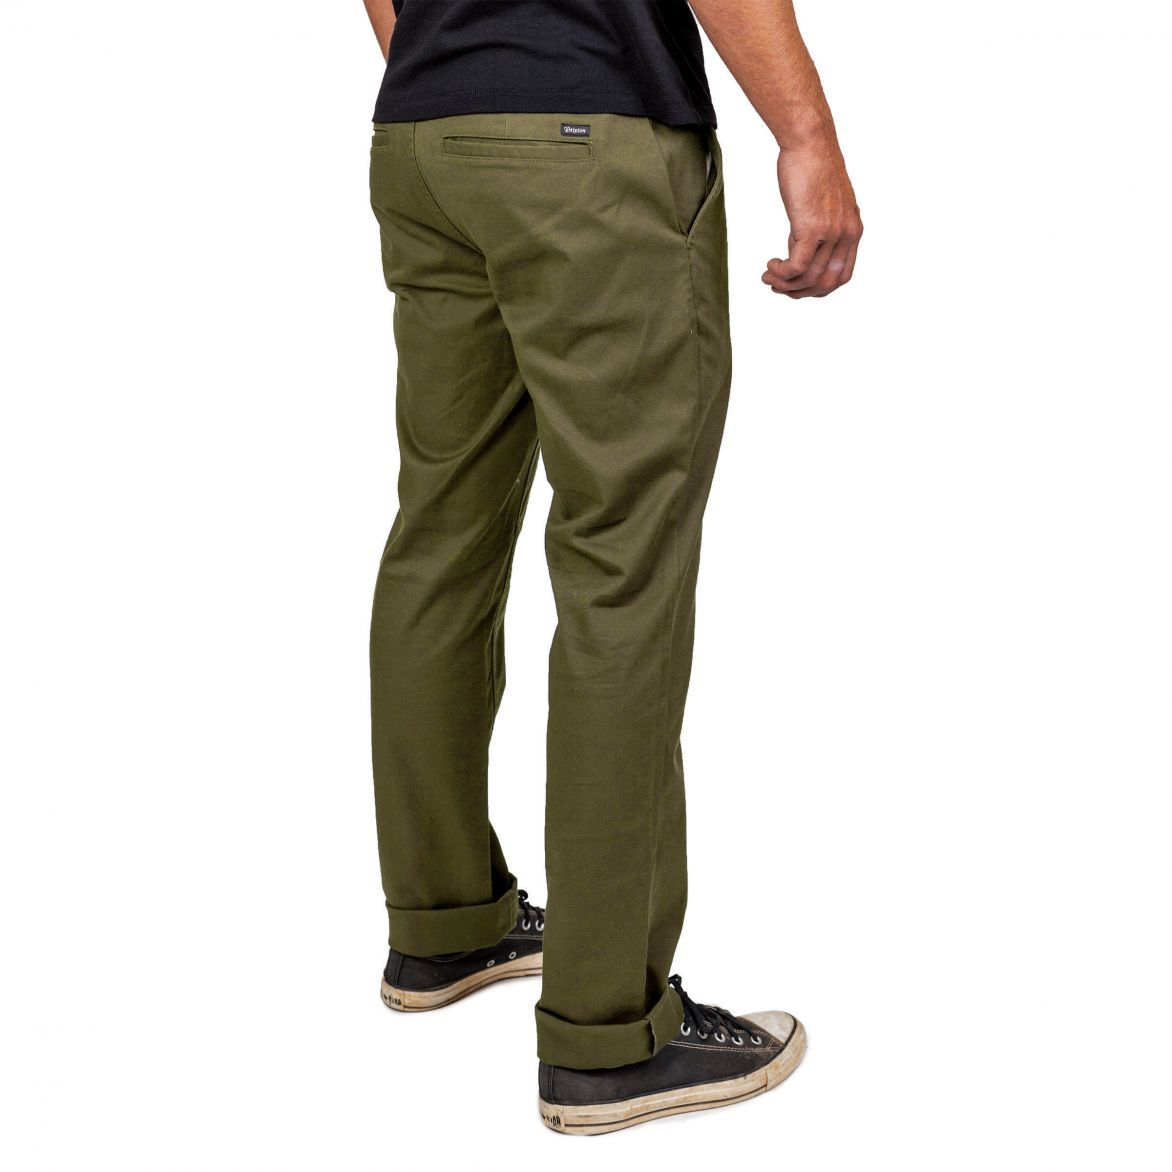 BRIXTON - RESERVE CHINO PANT - OLIVE  5befcbefd80